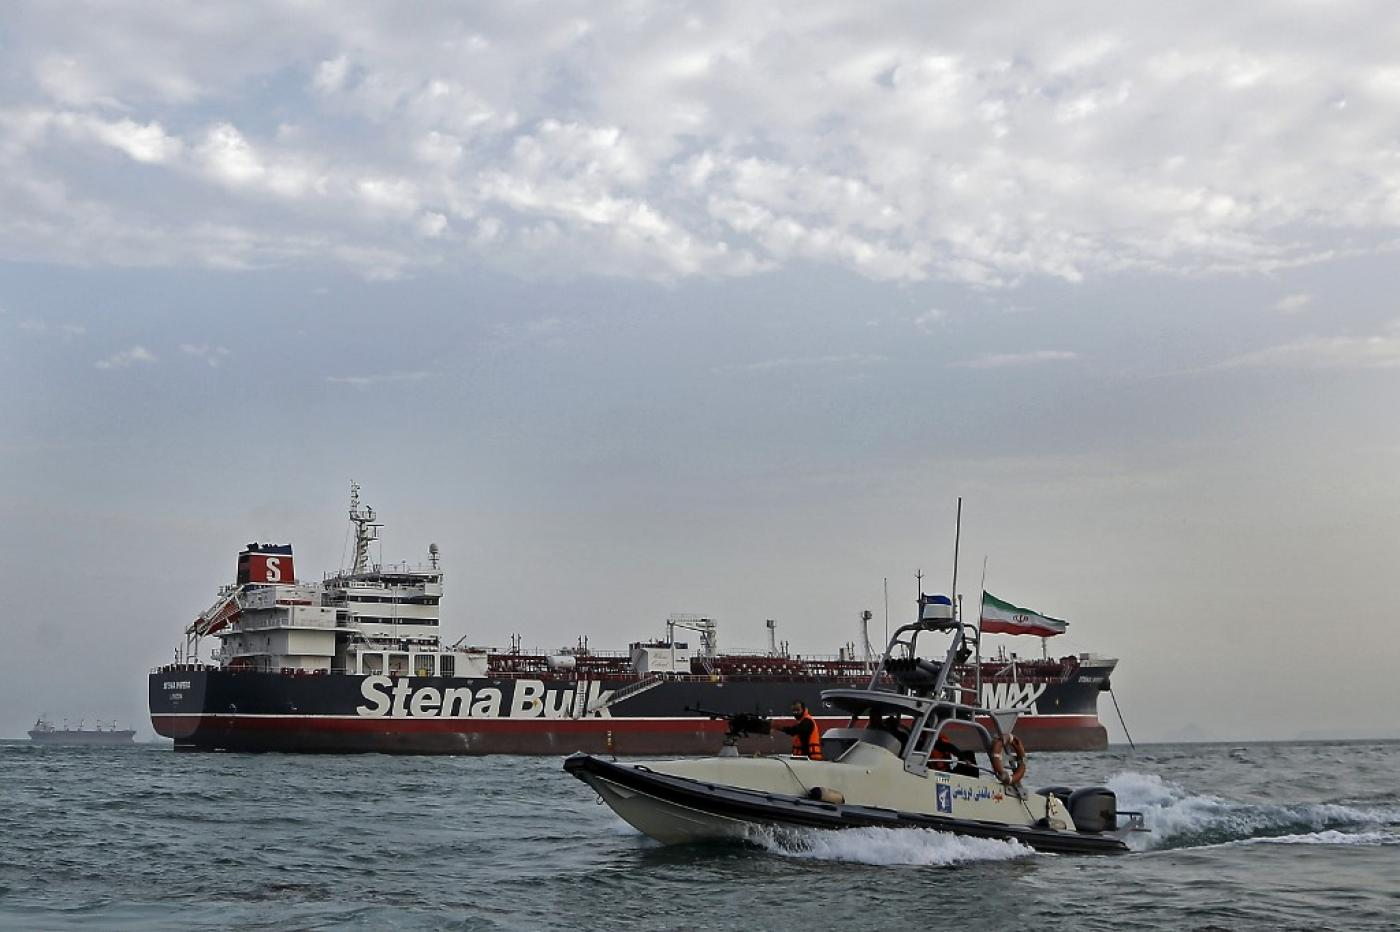 US waged cyberattack on database used by Iran to target tankers